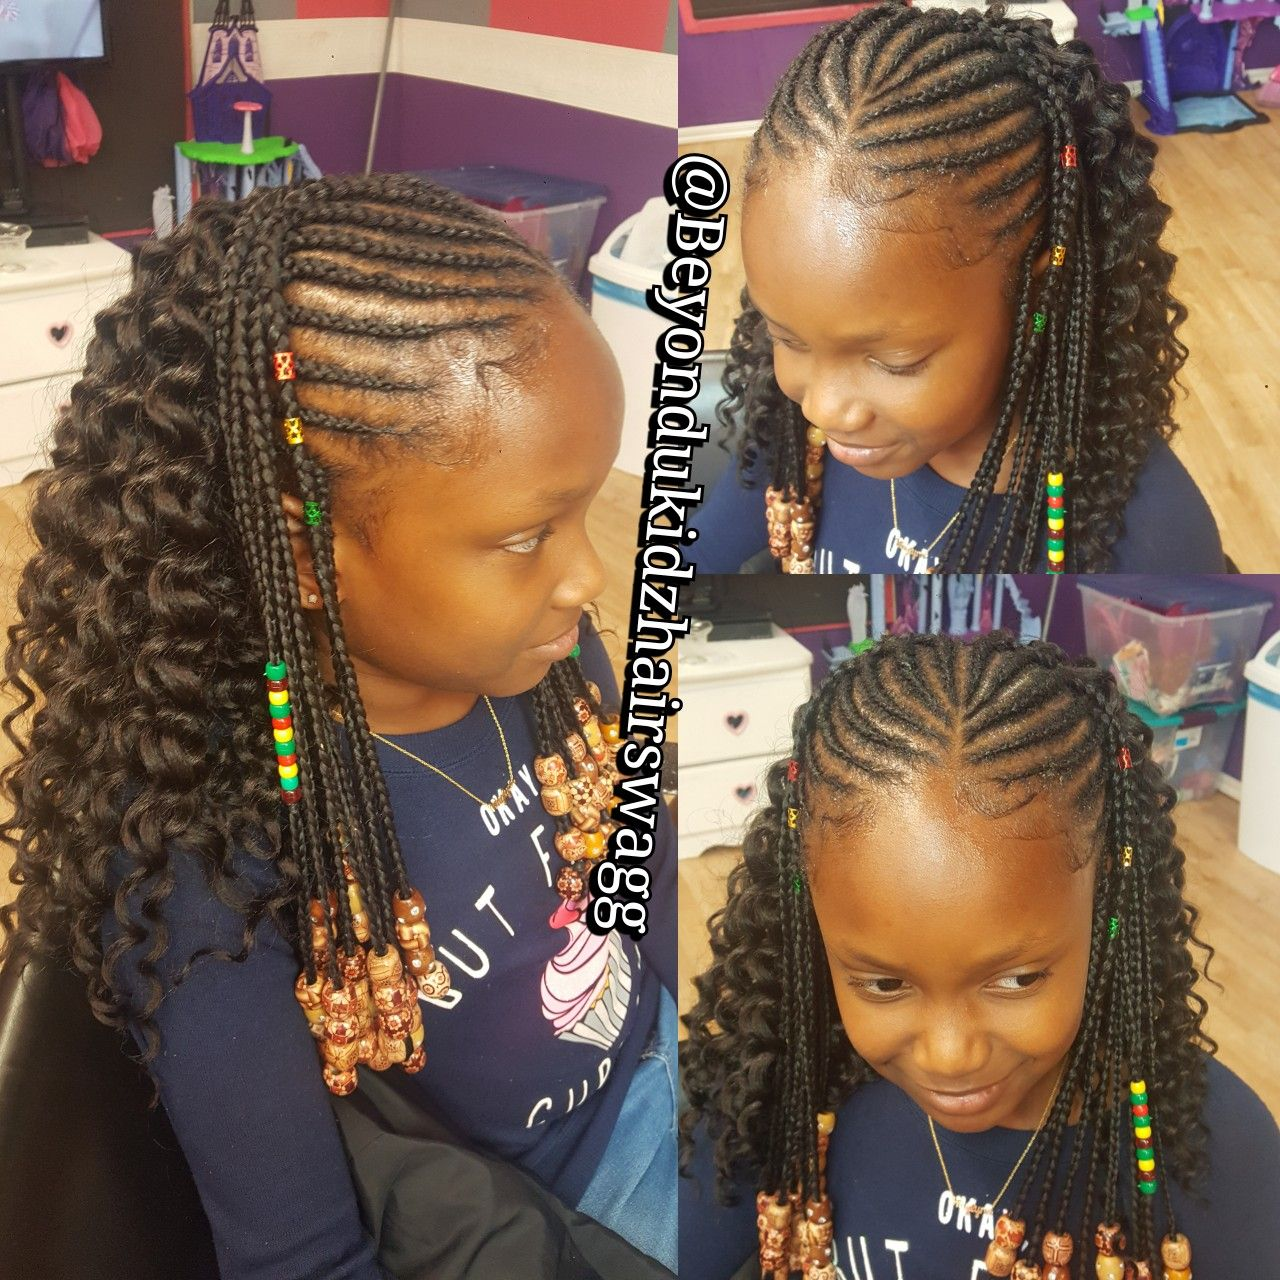 Pin by Tamika Neal on Kids hairstyle Pinterest Kid braid styles